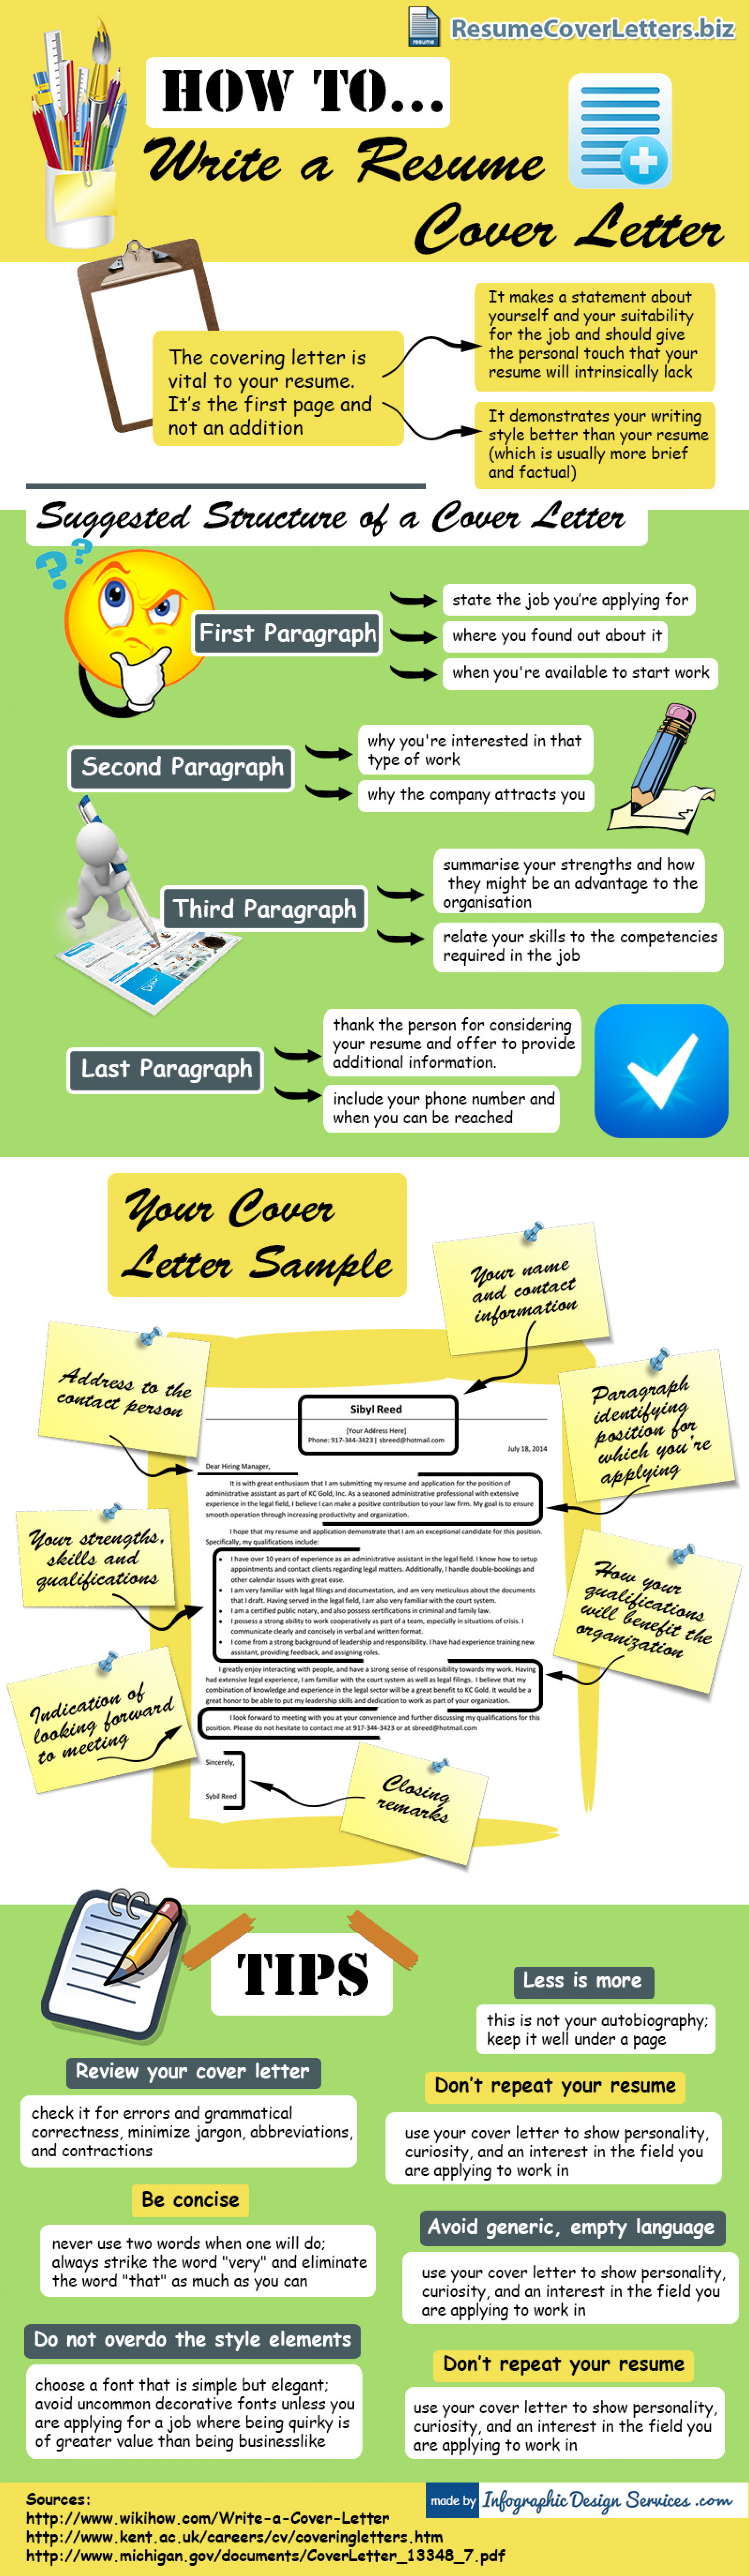 resume cover letter writing tips infographic tips for cover letter writing